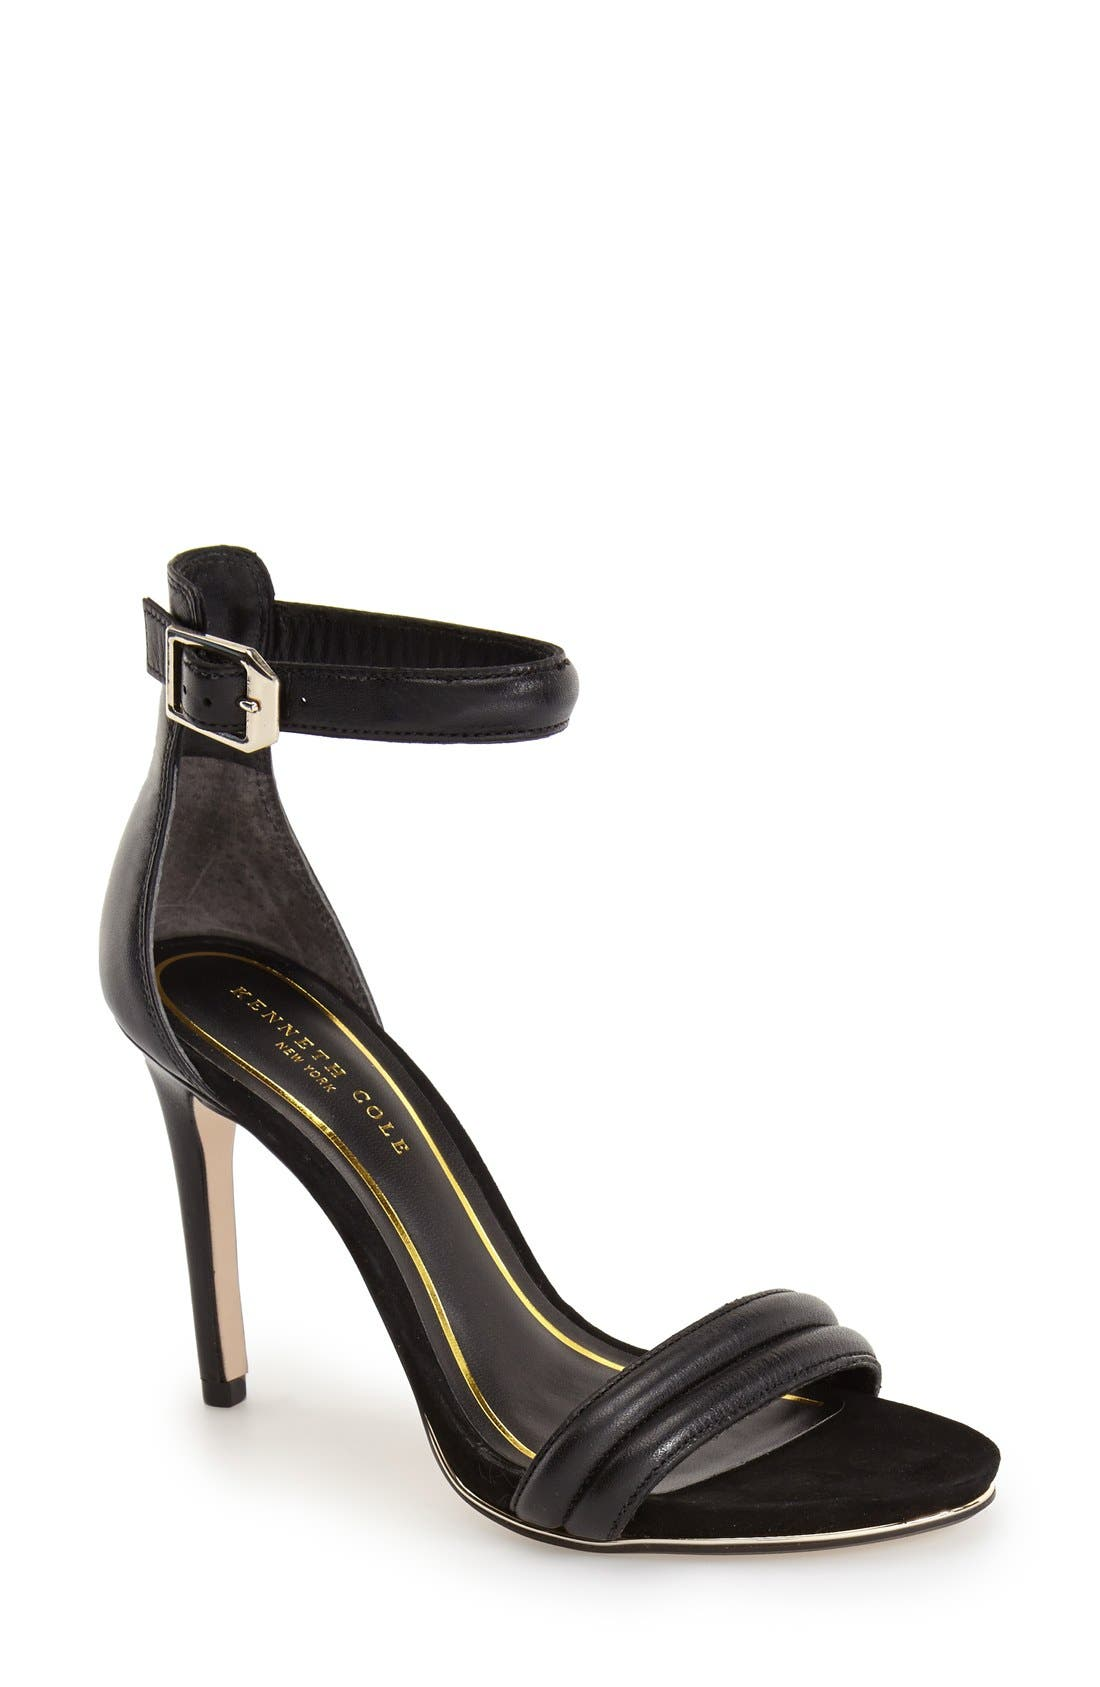 'Brooke' Ankle Strap Sandal,                         Main,                         color, Black Leather